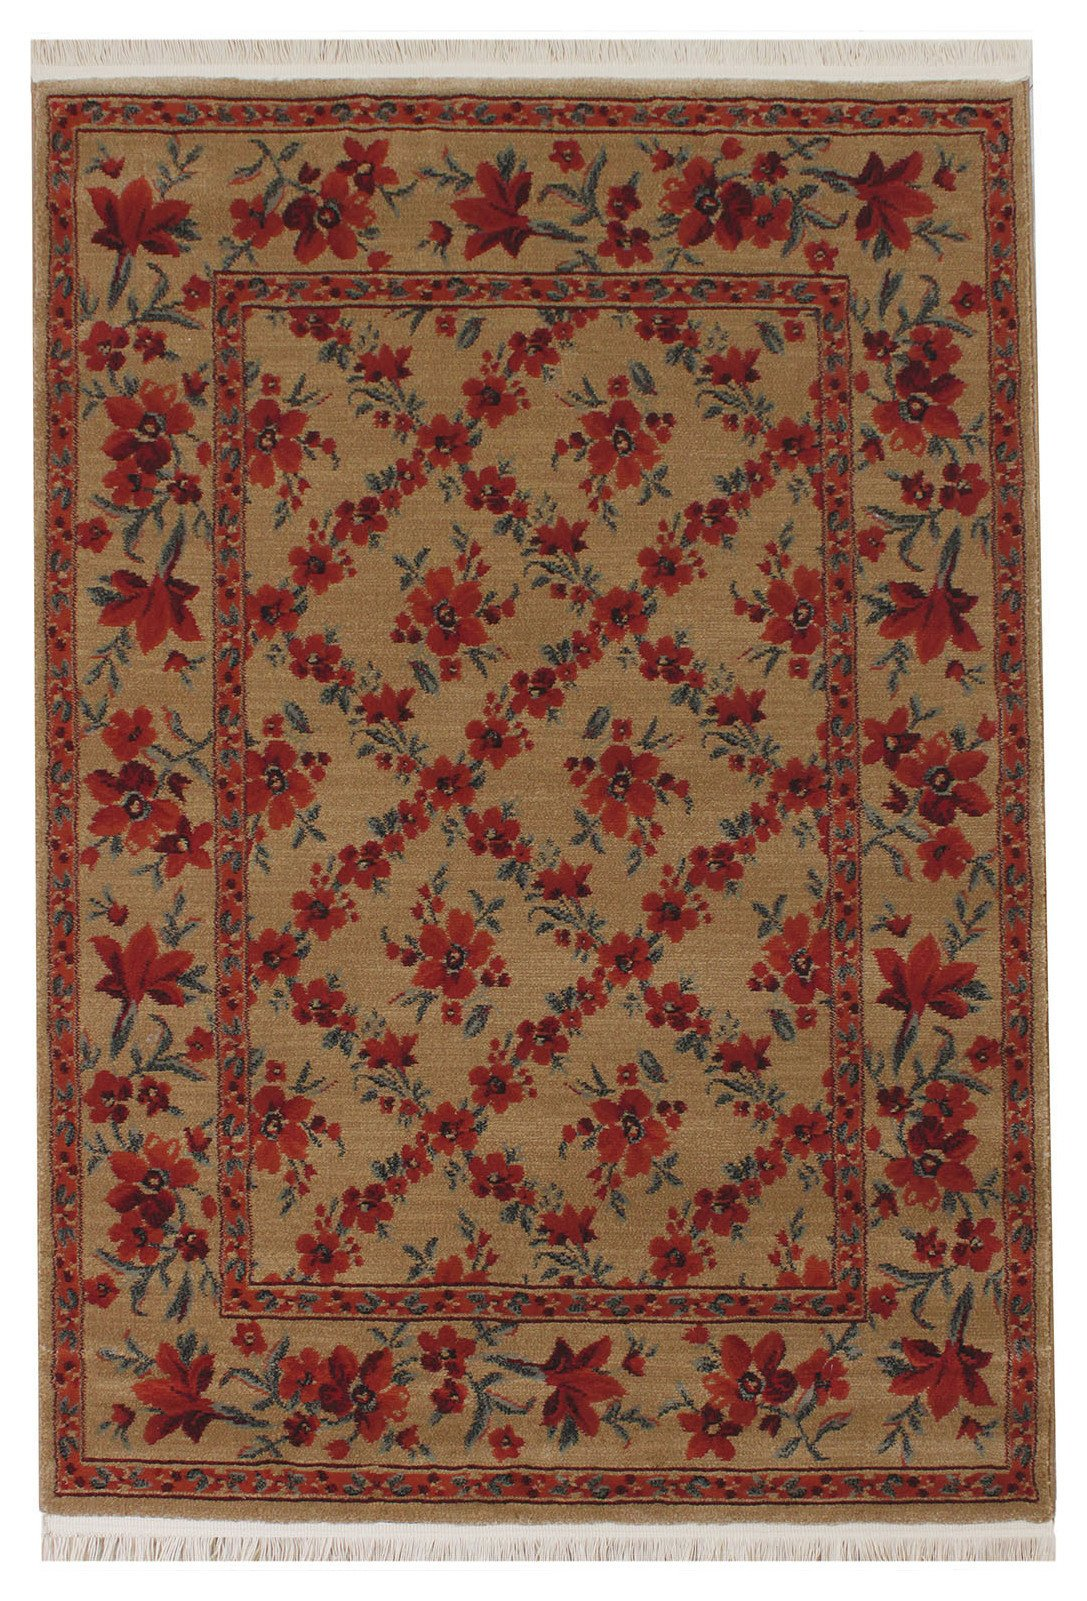 Image of Country House Trellis Rug - 120x170 - Natural